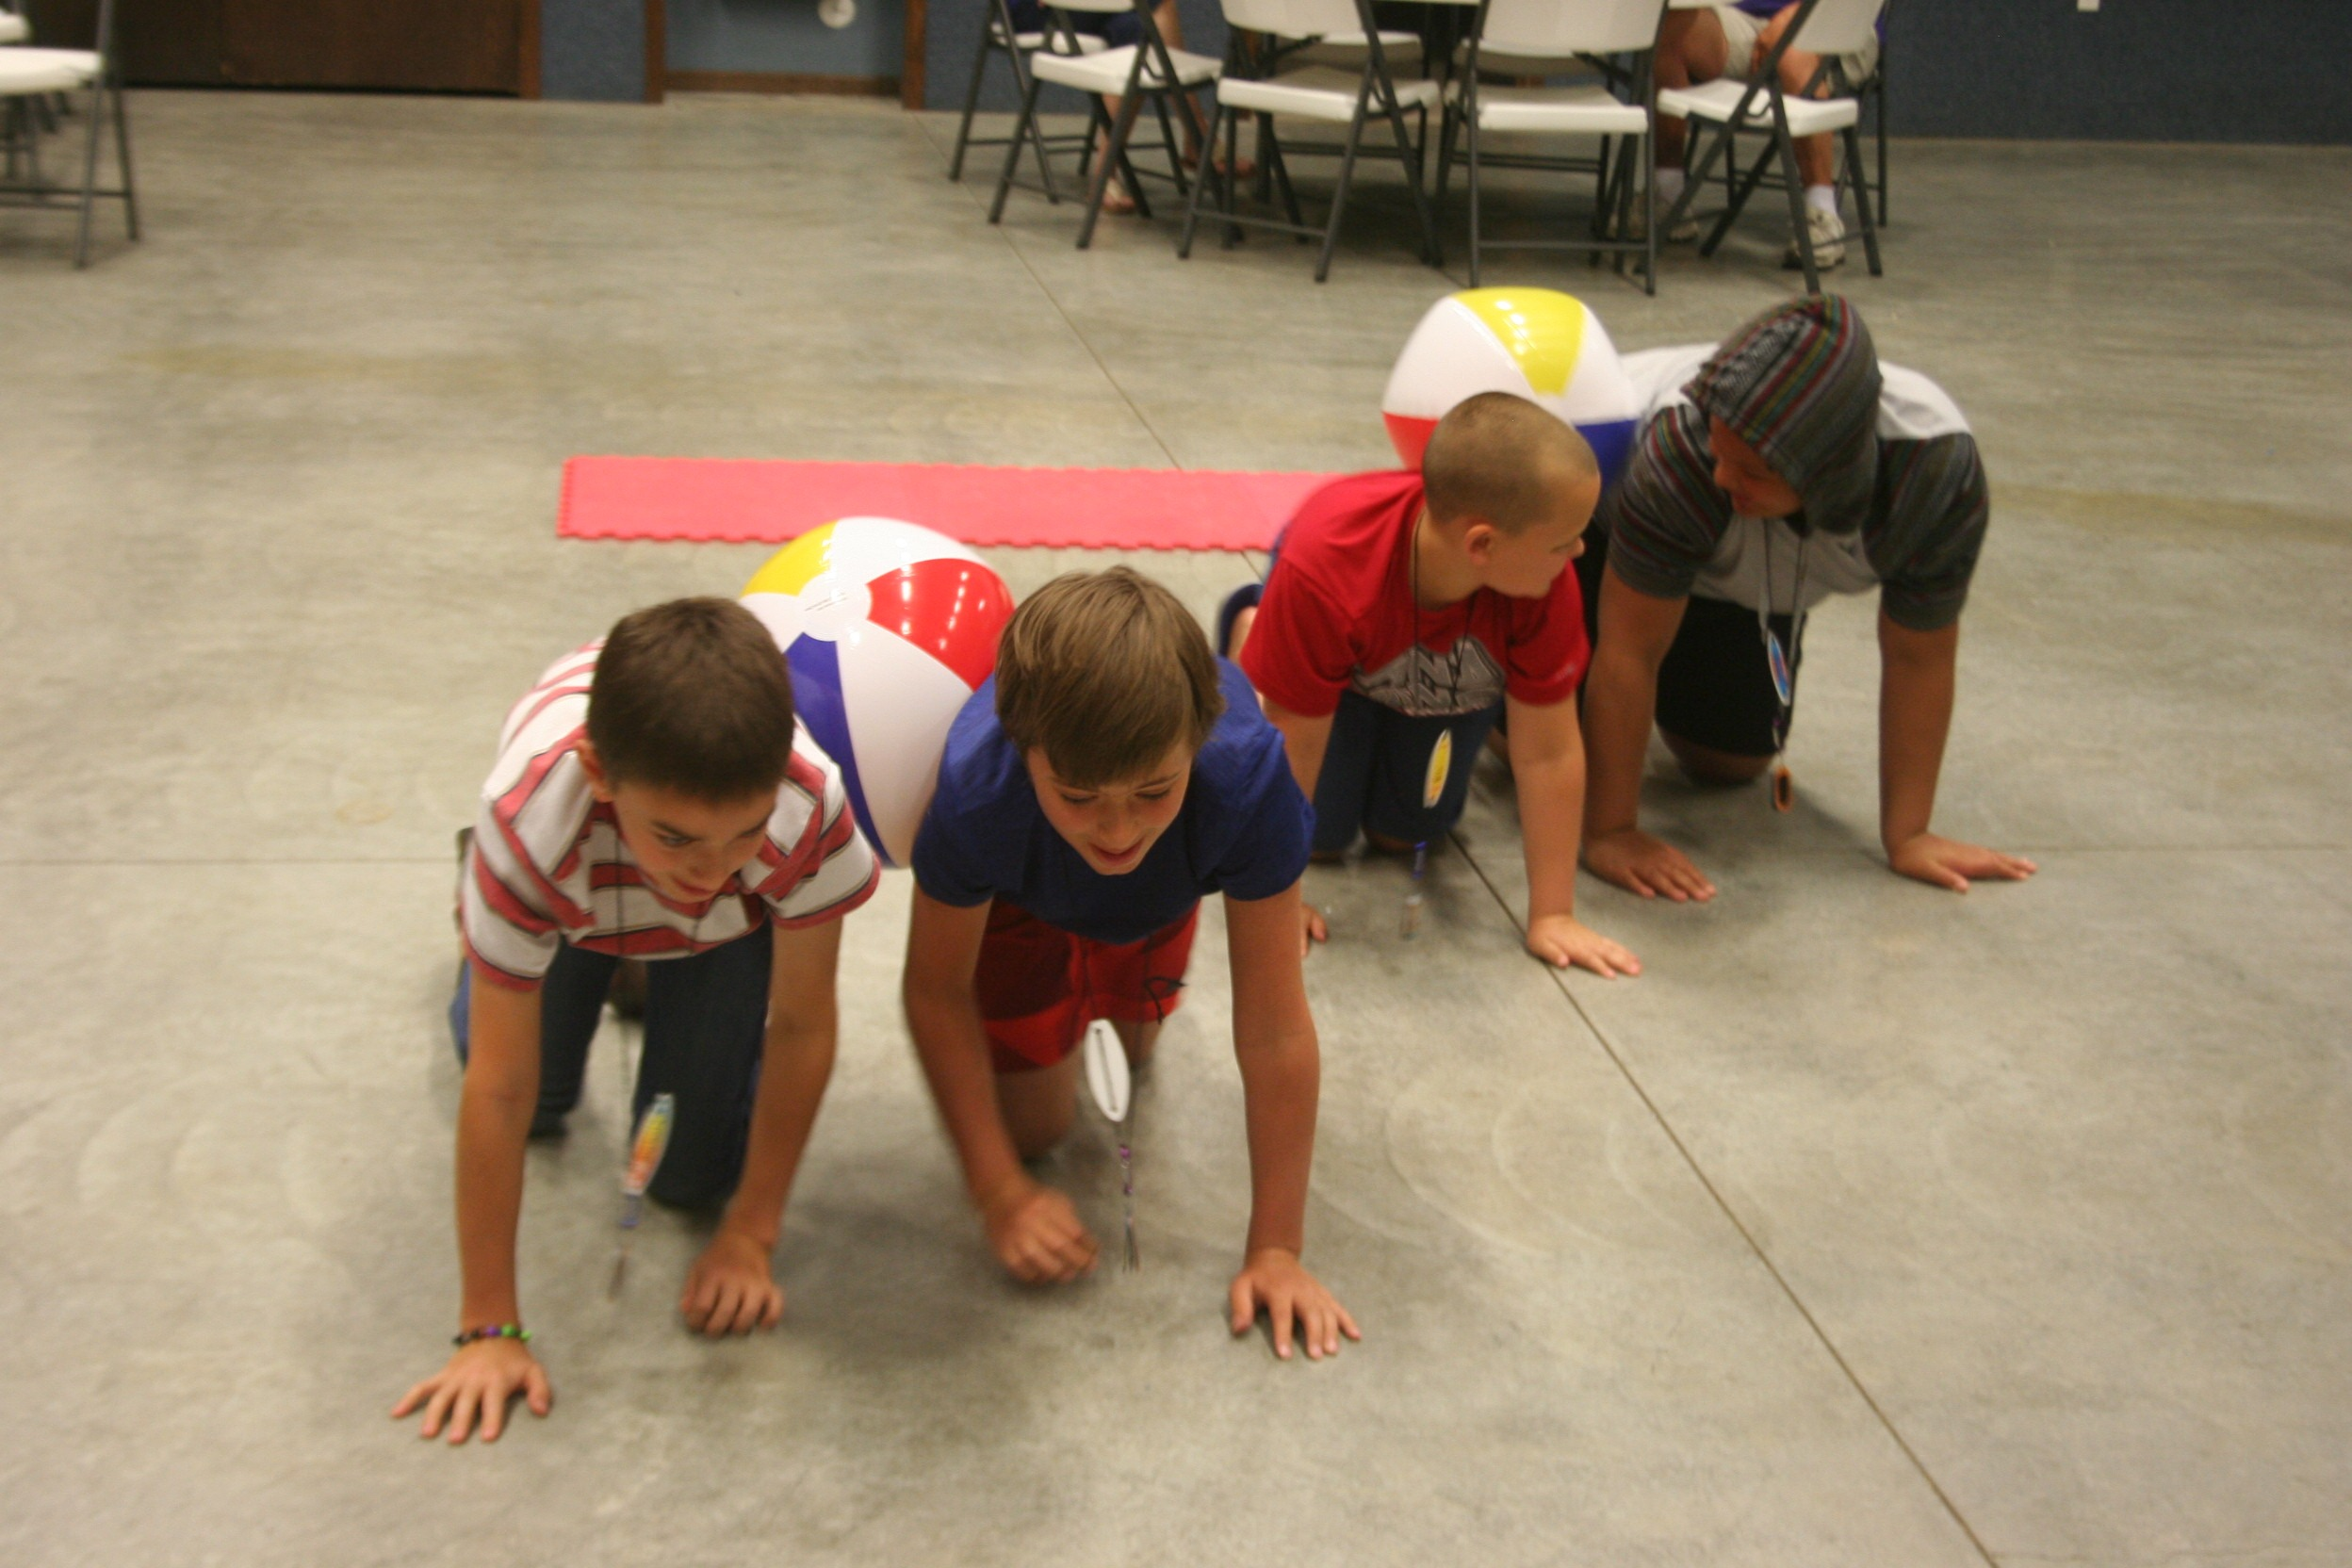 Swimming and barbecue will be included in VBS this year